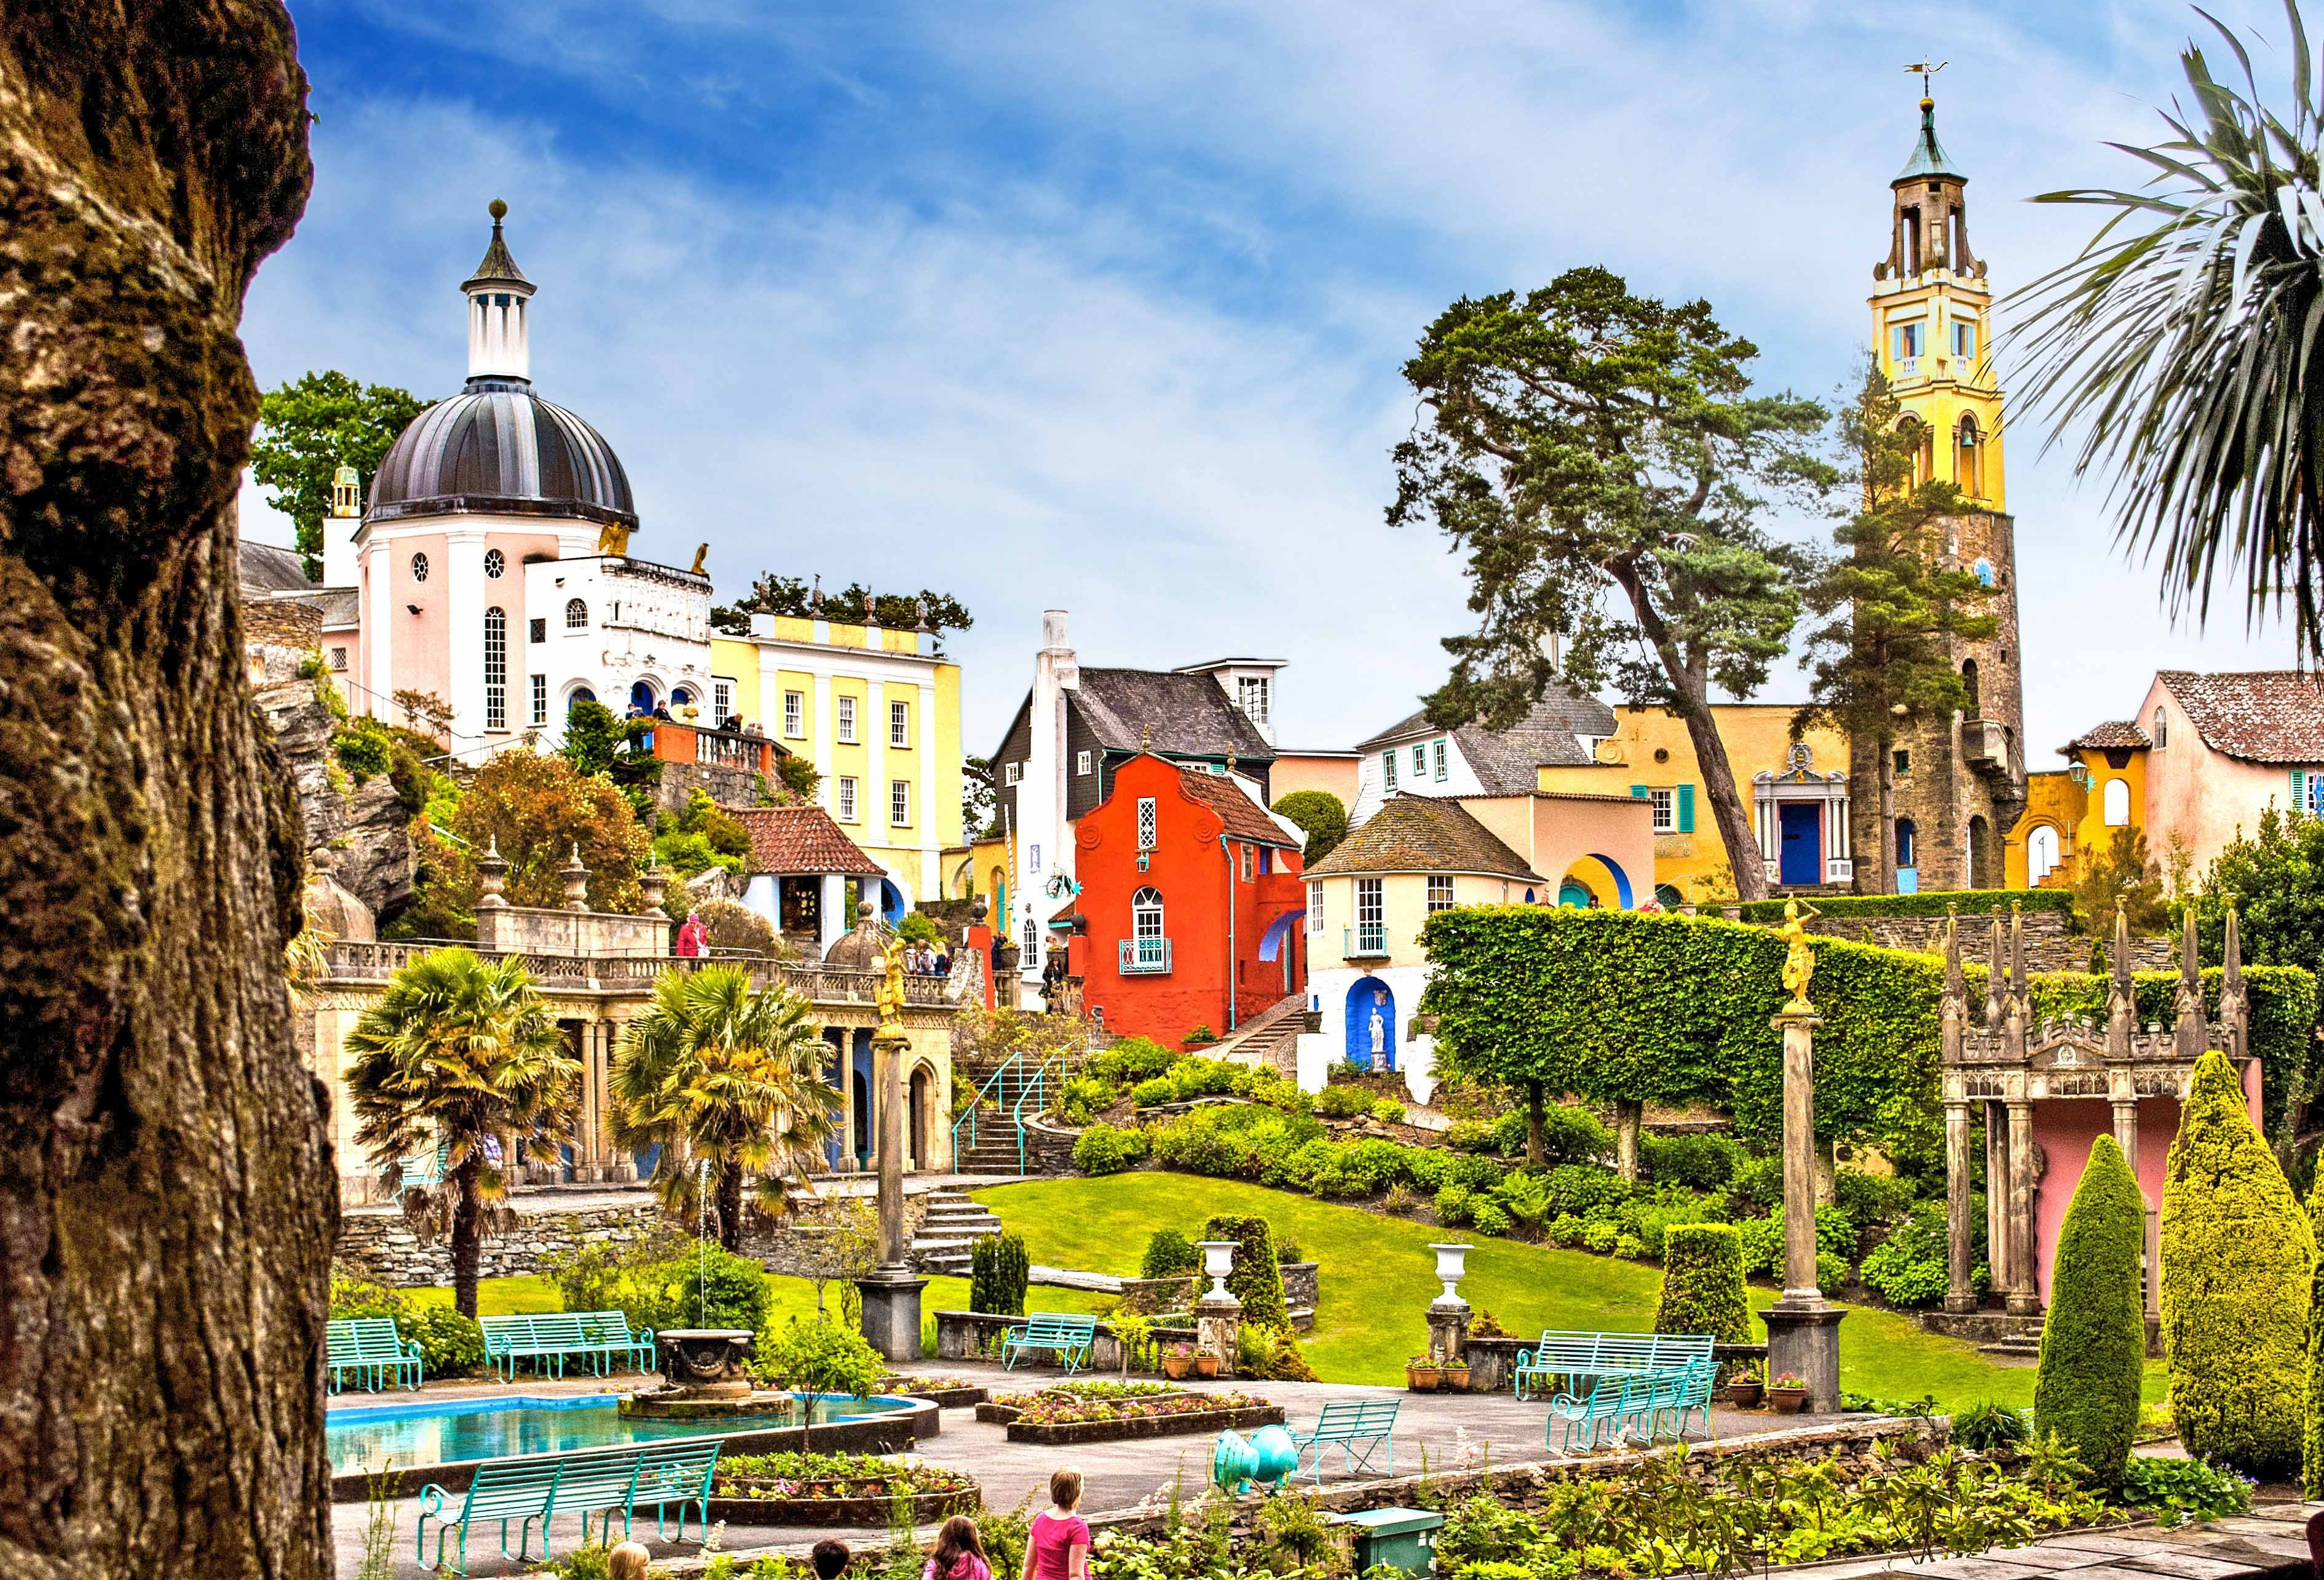 Portmeirion North Wales, Portmeirion - North Wales - YouTube